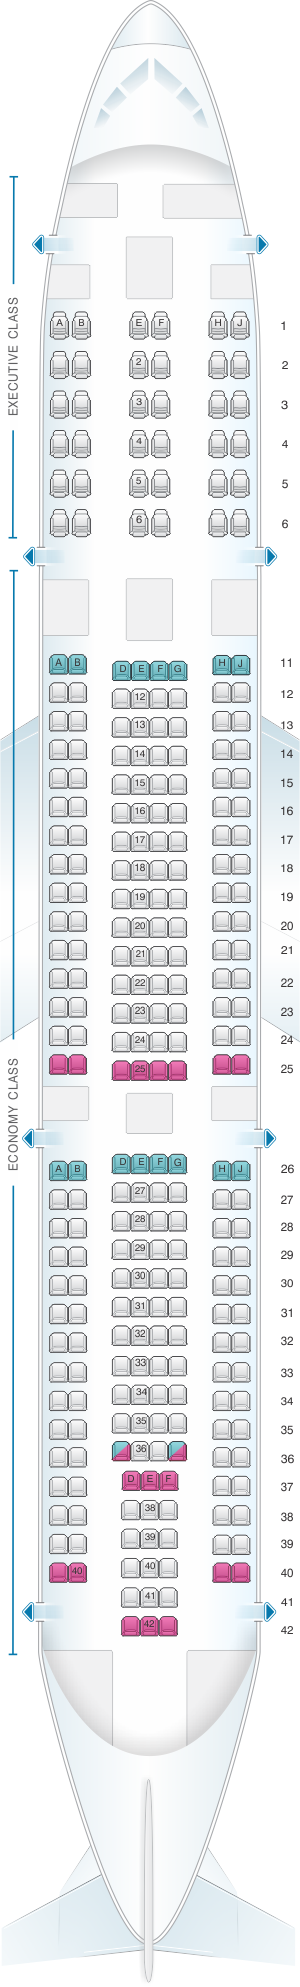 Seat map for TAP Air Portugal Airbus A340